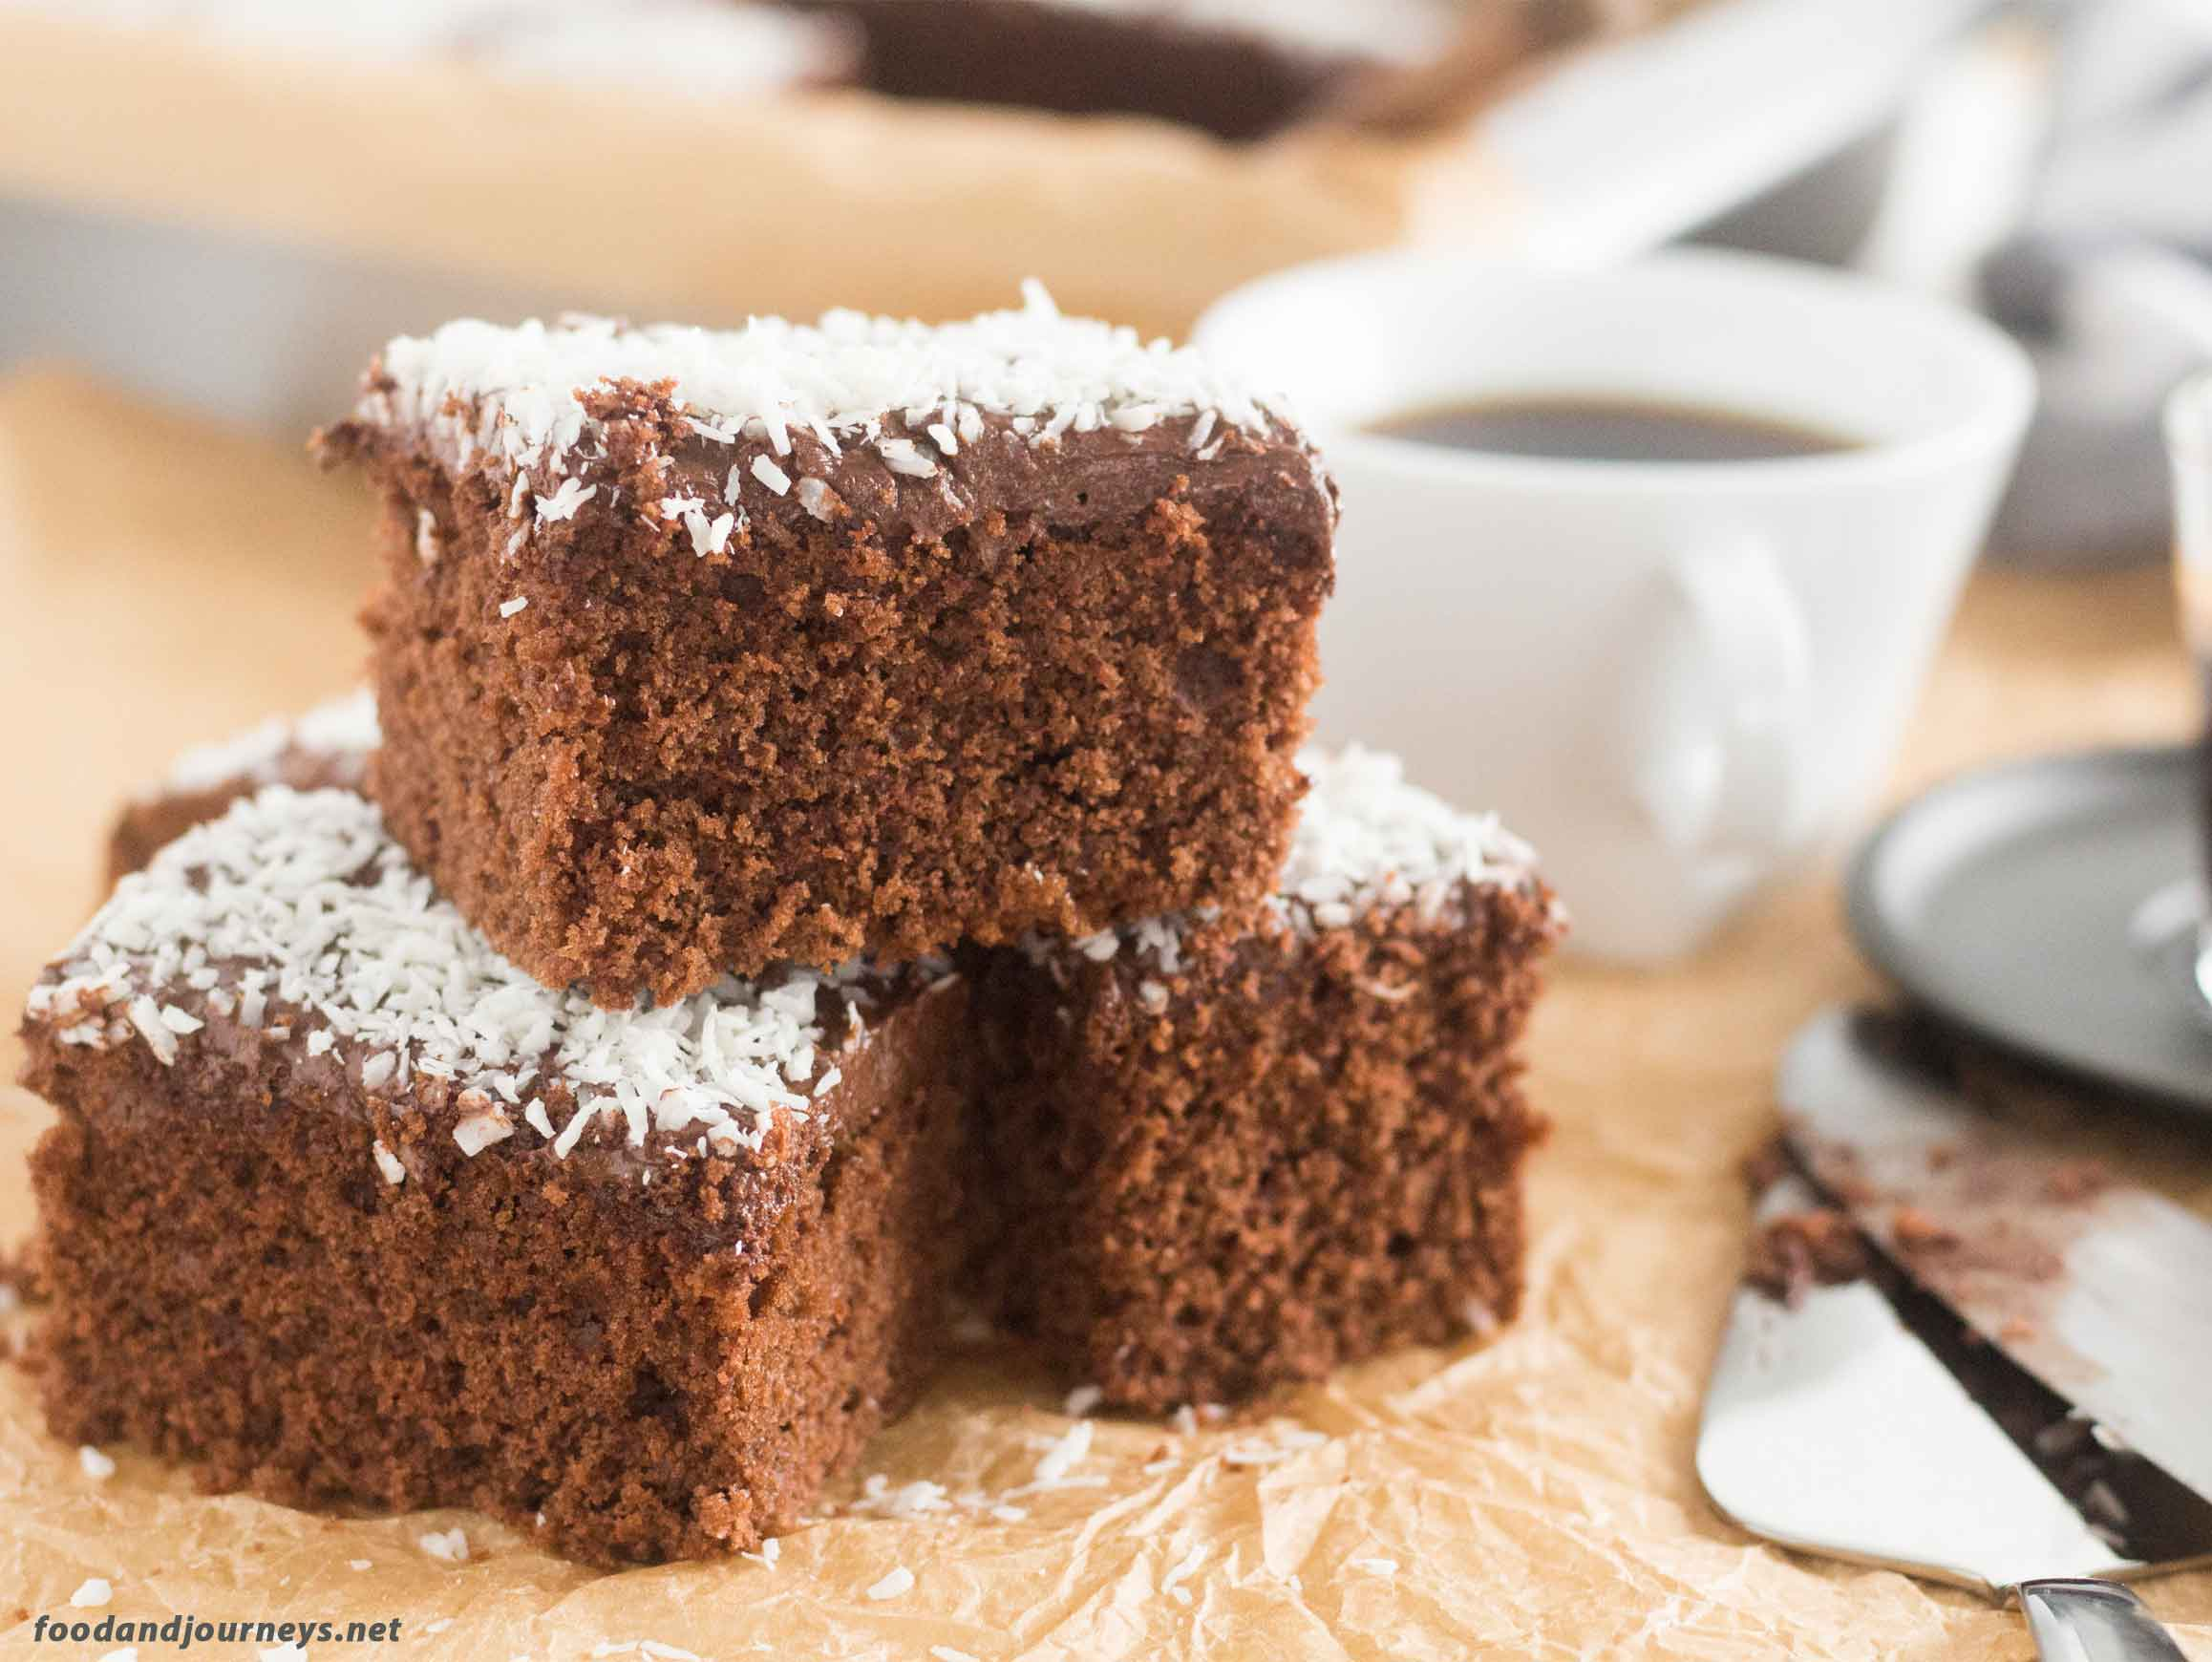 Swedish Chocolate Coffee Squares MPIC|foodandjourneys.net